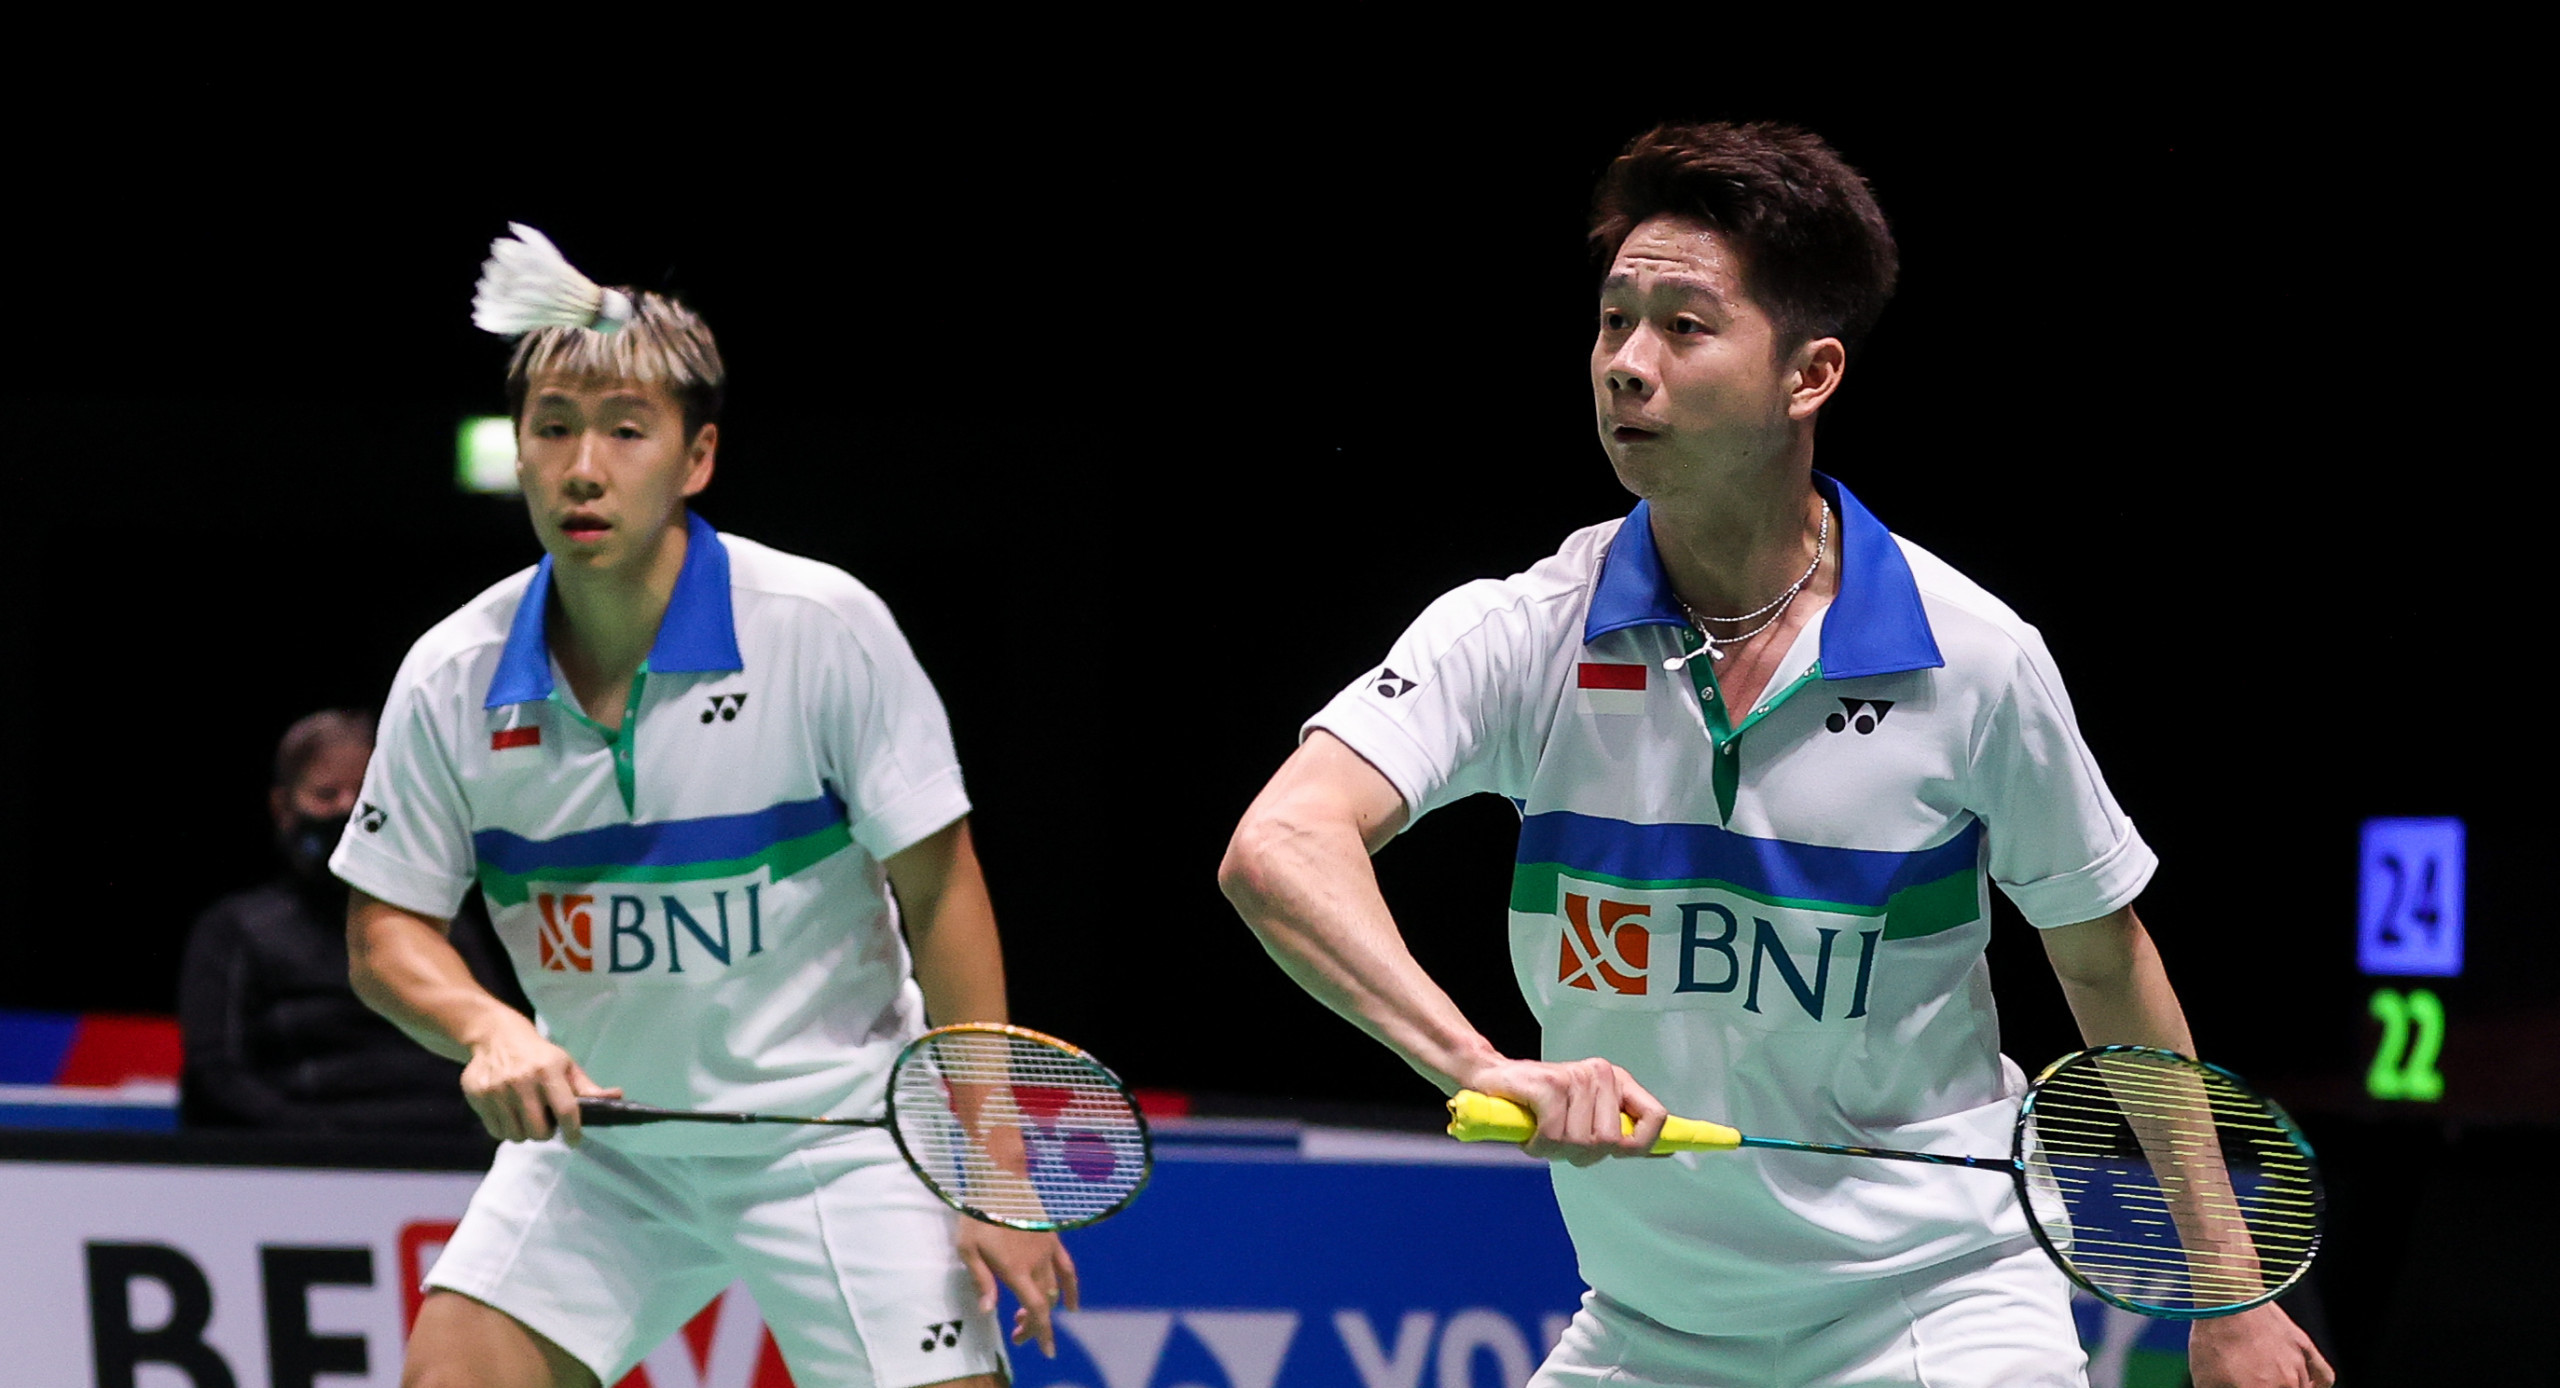 Indonesian Team Withdrawn from YONEX All England Open 2021